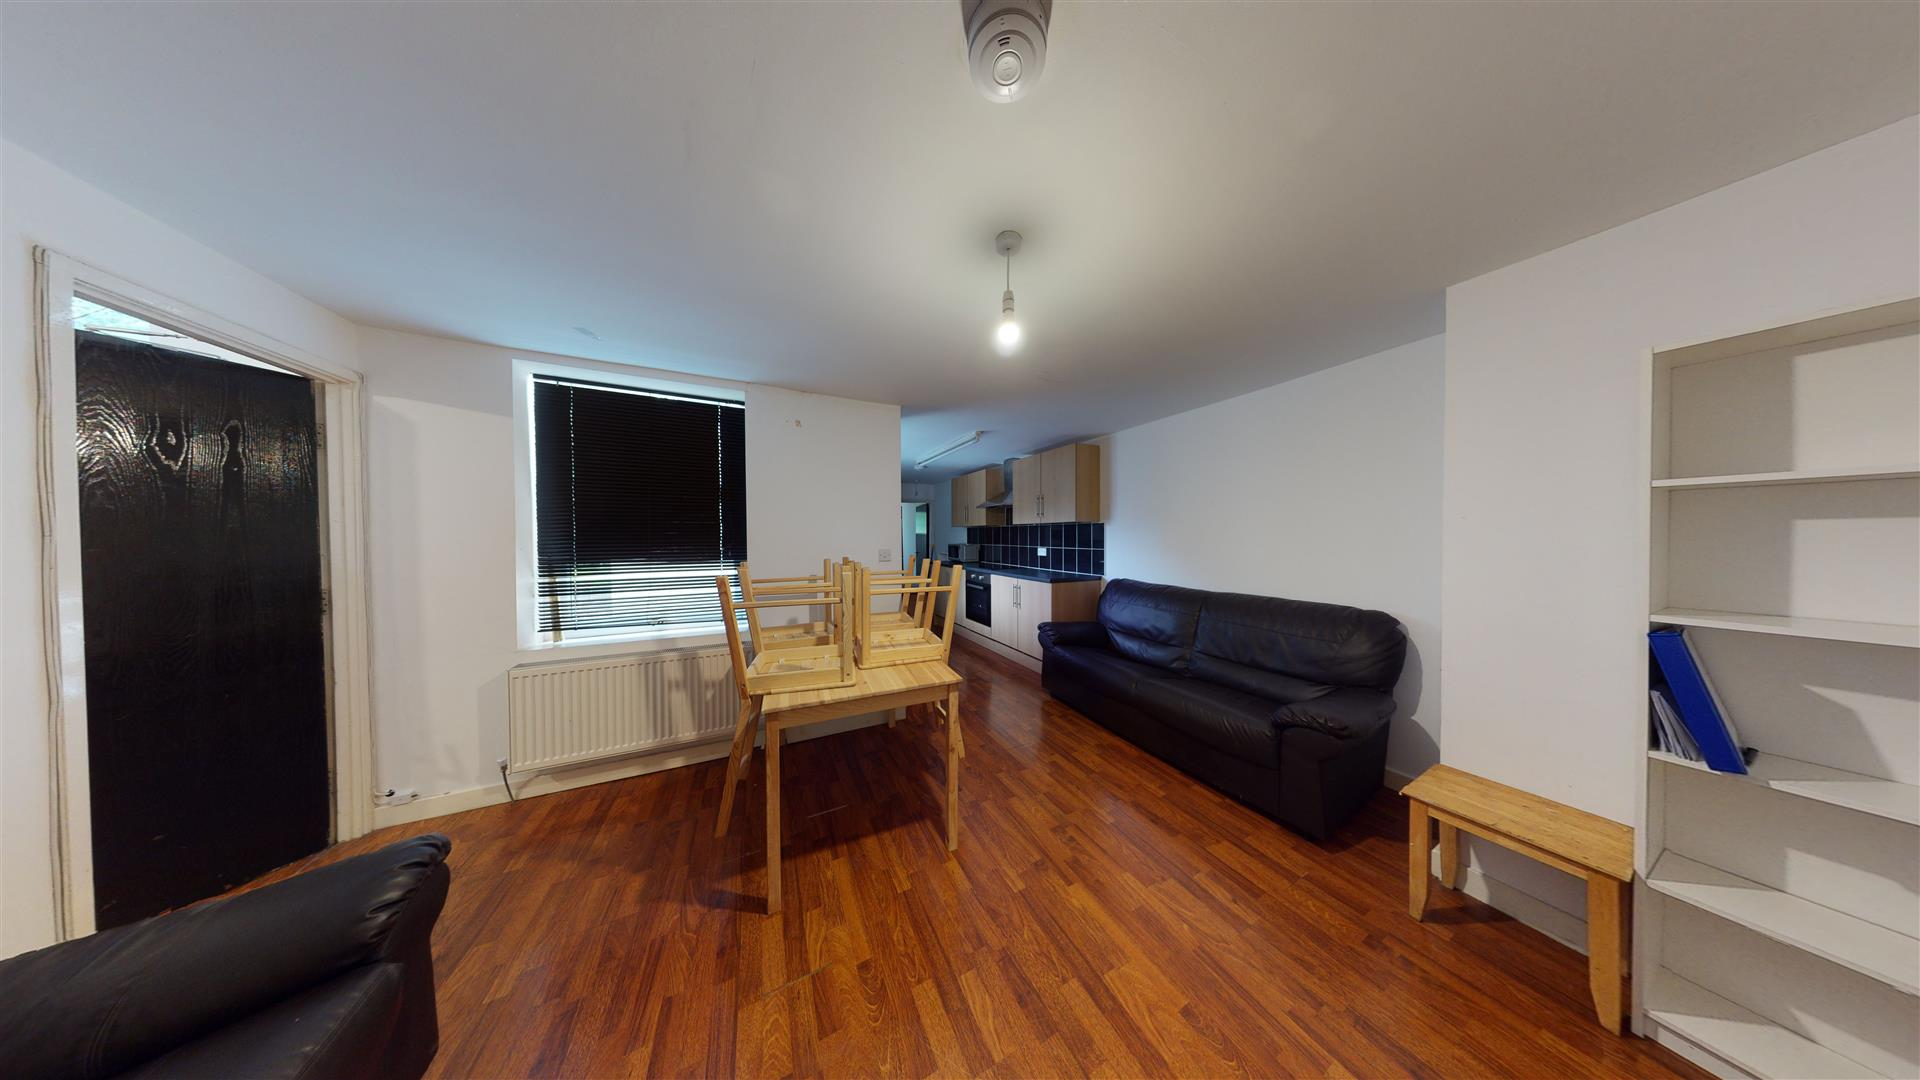 4 bed flat to rent in Newcastle Upon Tyne, NE2 1JX, NE2